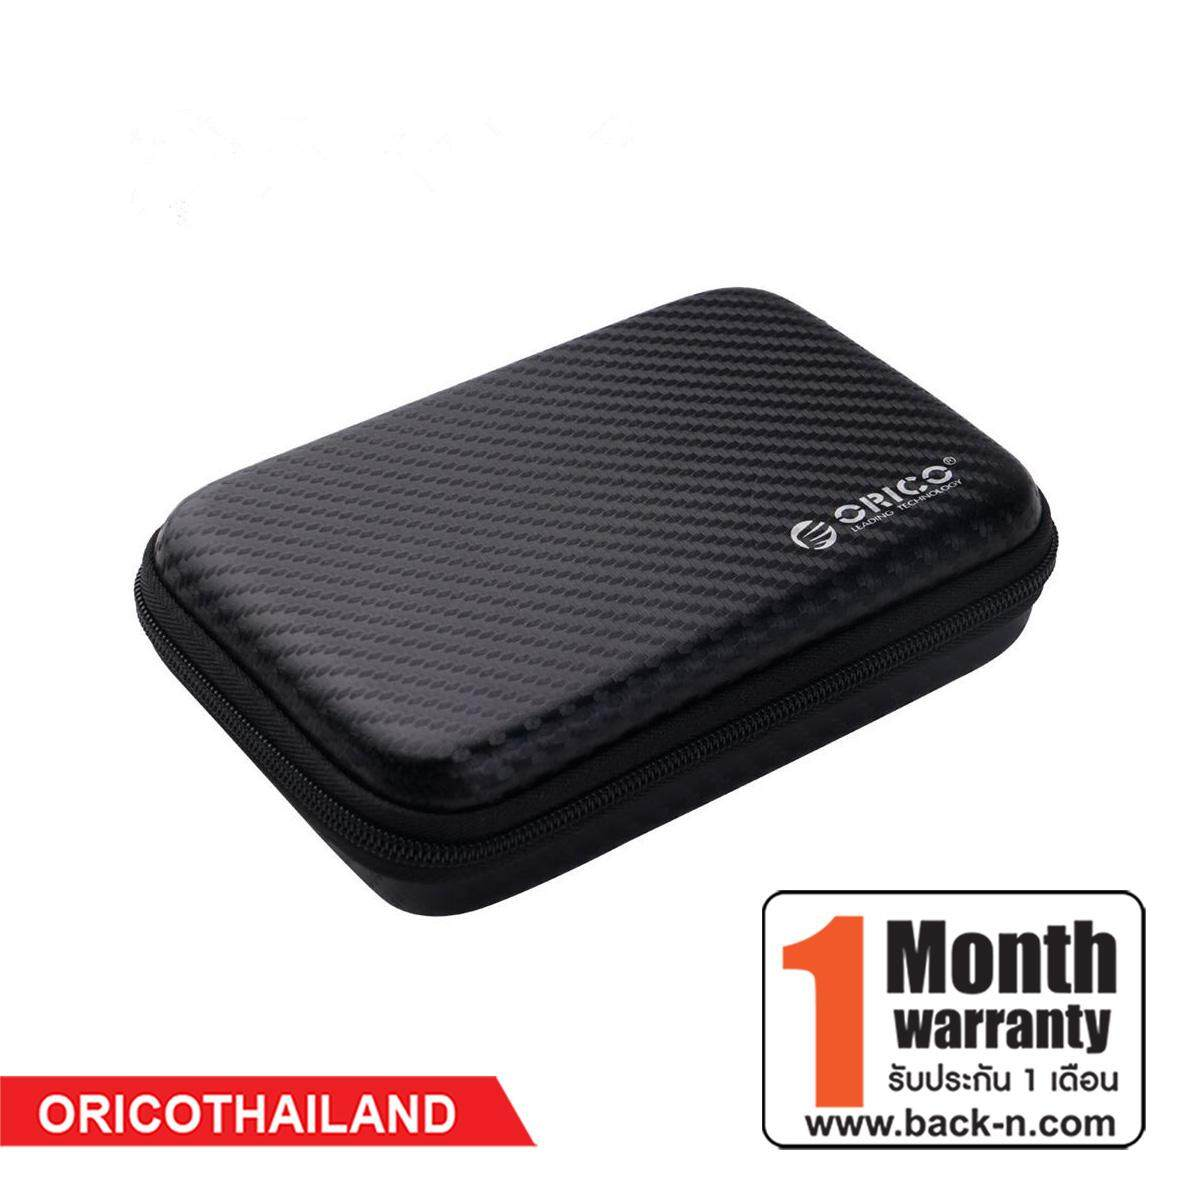 Sell Orico External Harddisk Cheapest Best Quality Th Store Bsc35 05 Aluminum 25 35 Inch Hard Drive Protection Box Thb 180 Phm